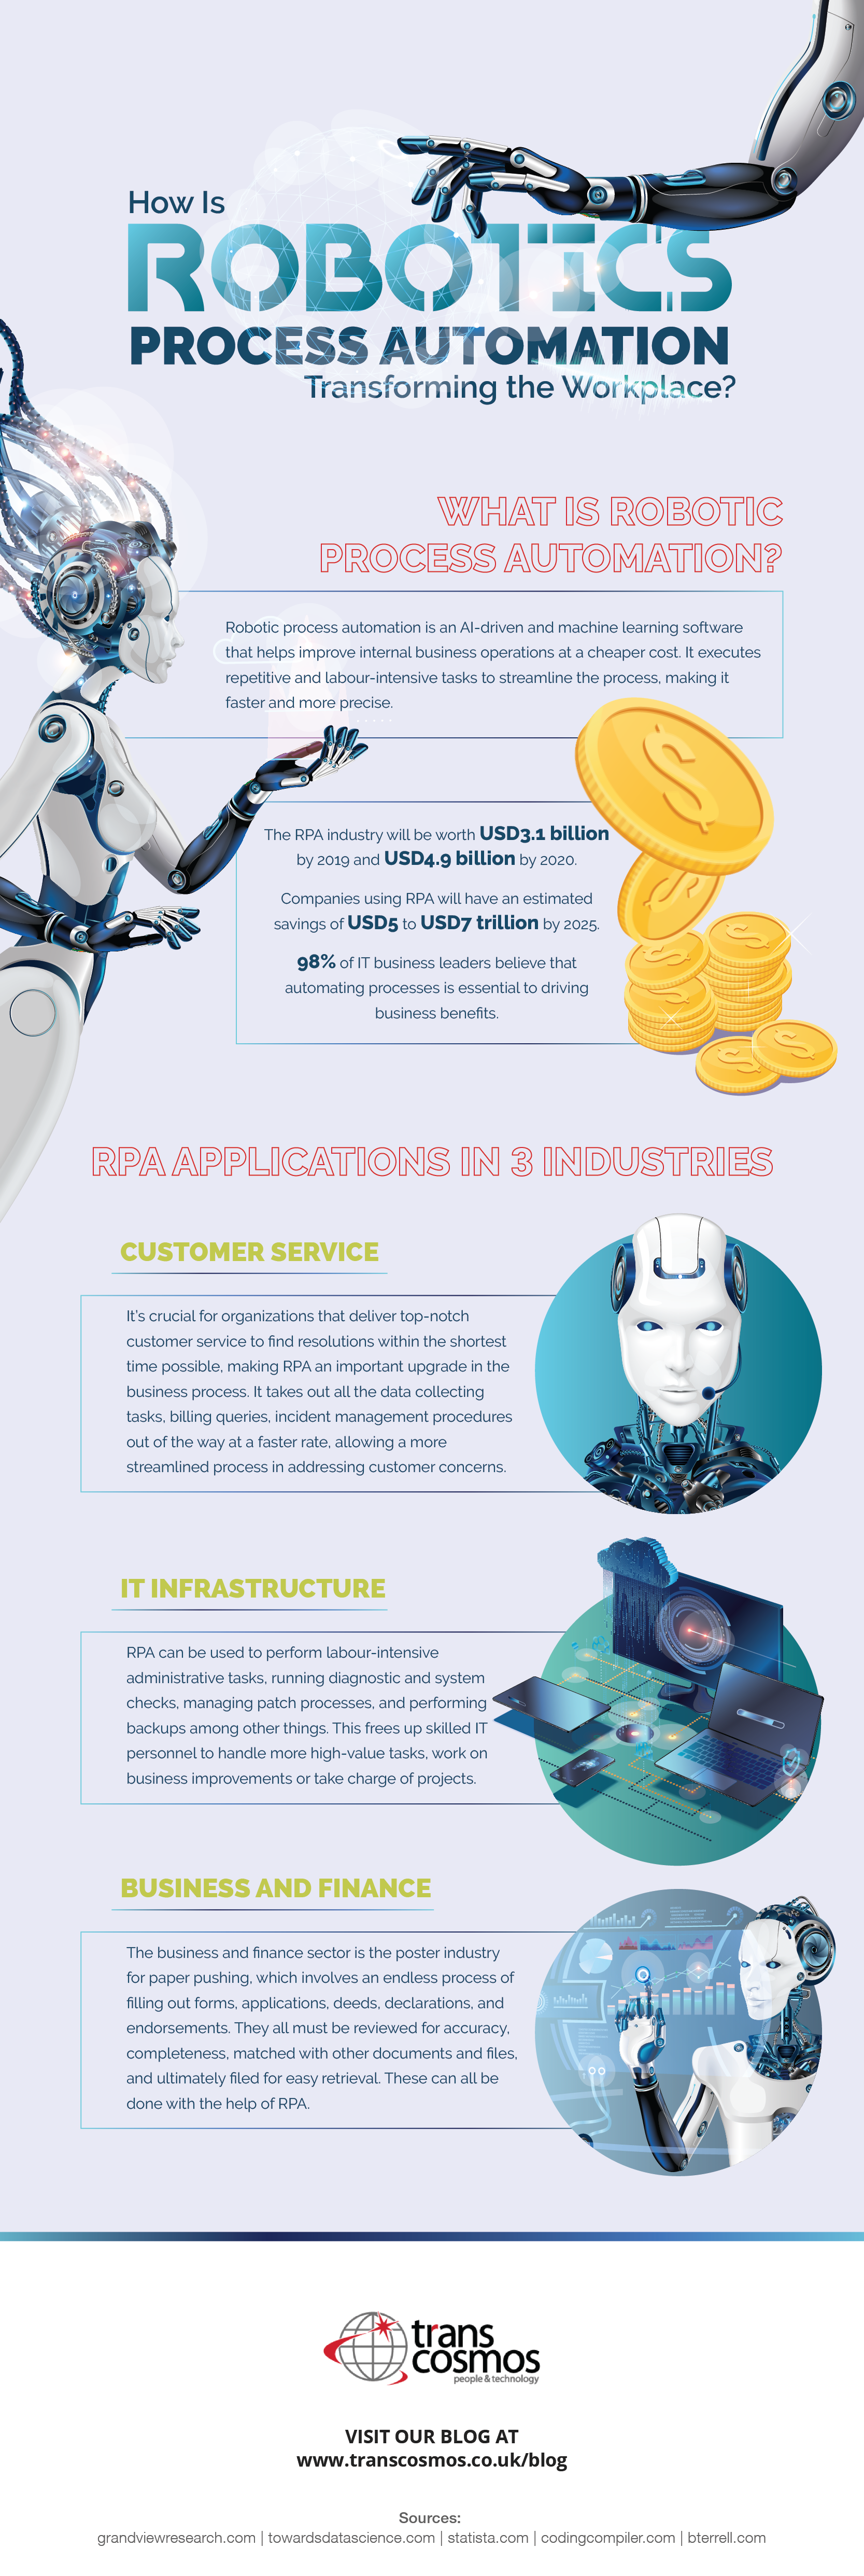 Infographic of robotic process automation statistics and applications